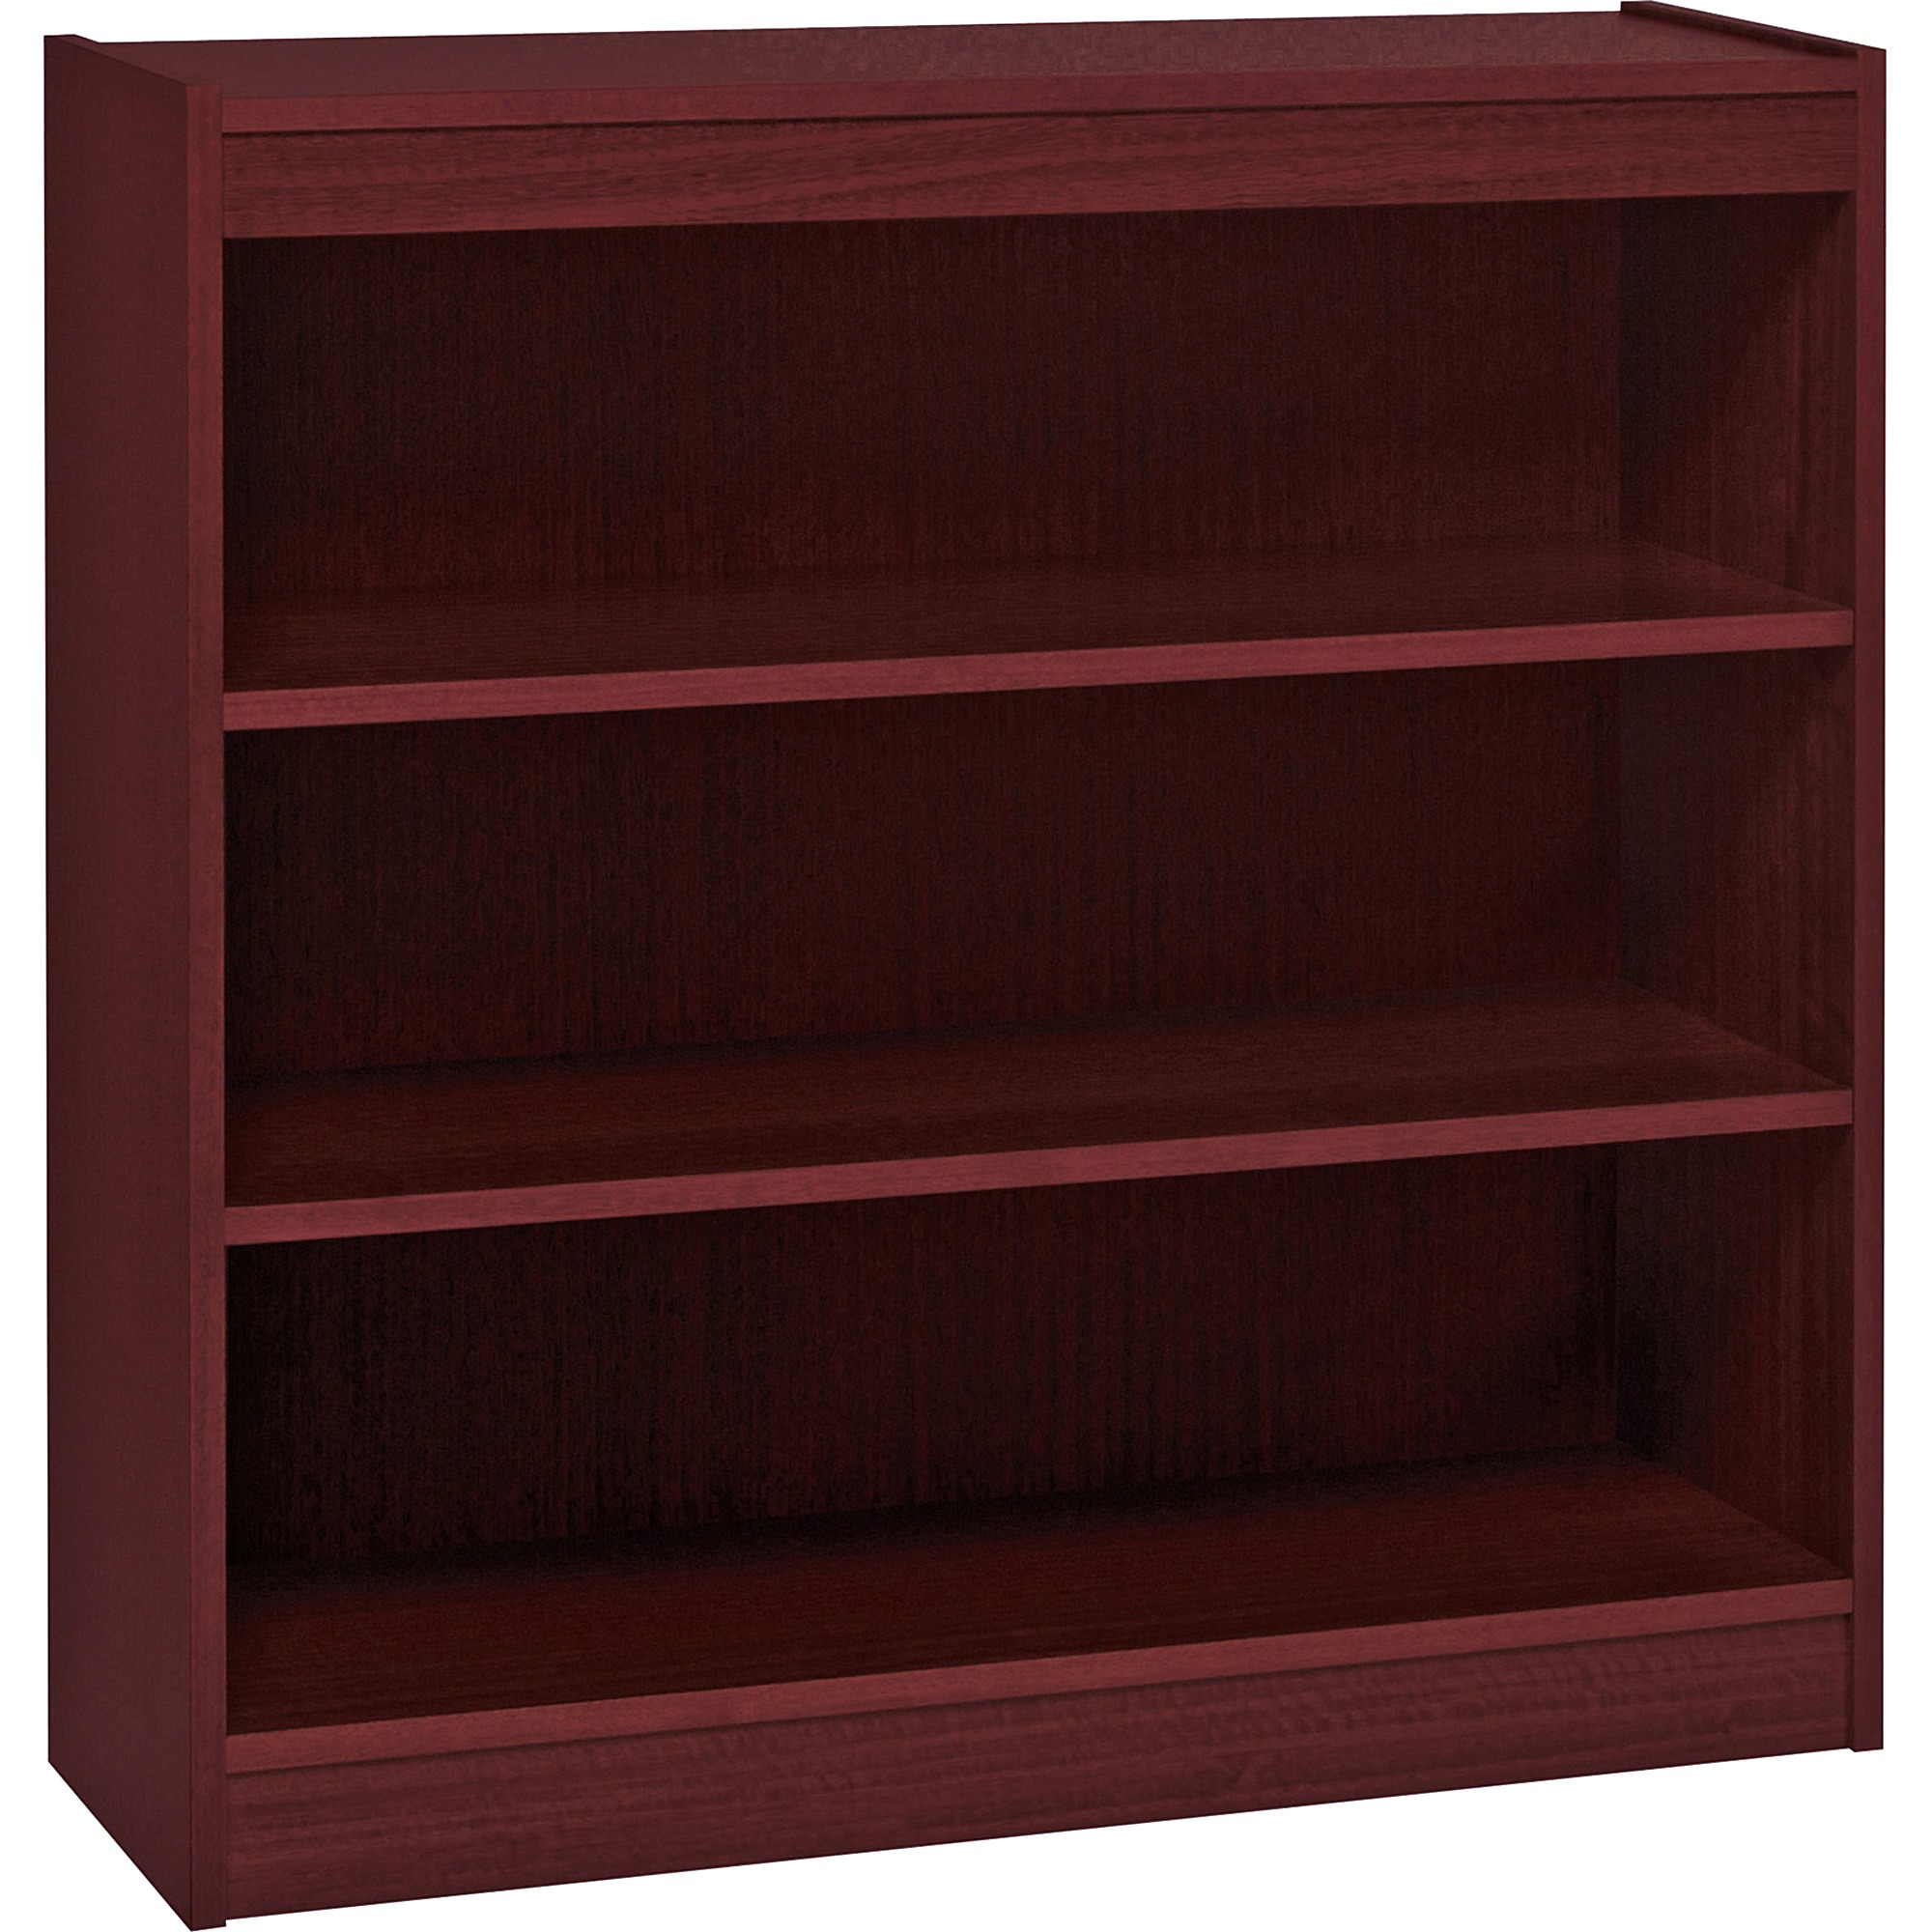 Lorell, LLR60071, Panel End Hardwood Veneer Bookcase, 1 Each, Mahogany